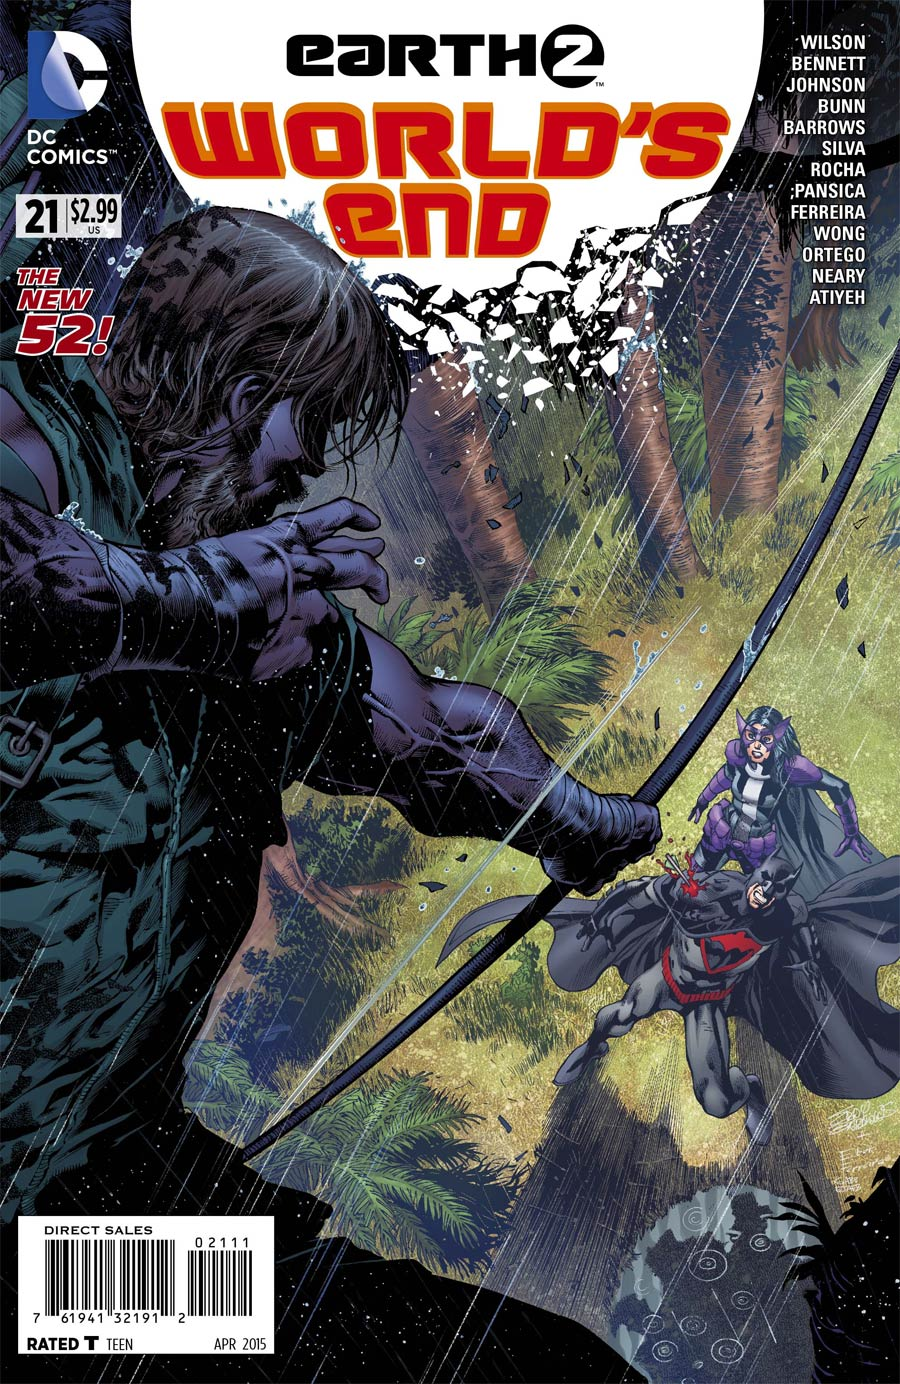 Earth 2 Worlds End #21